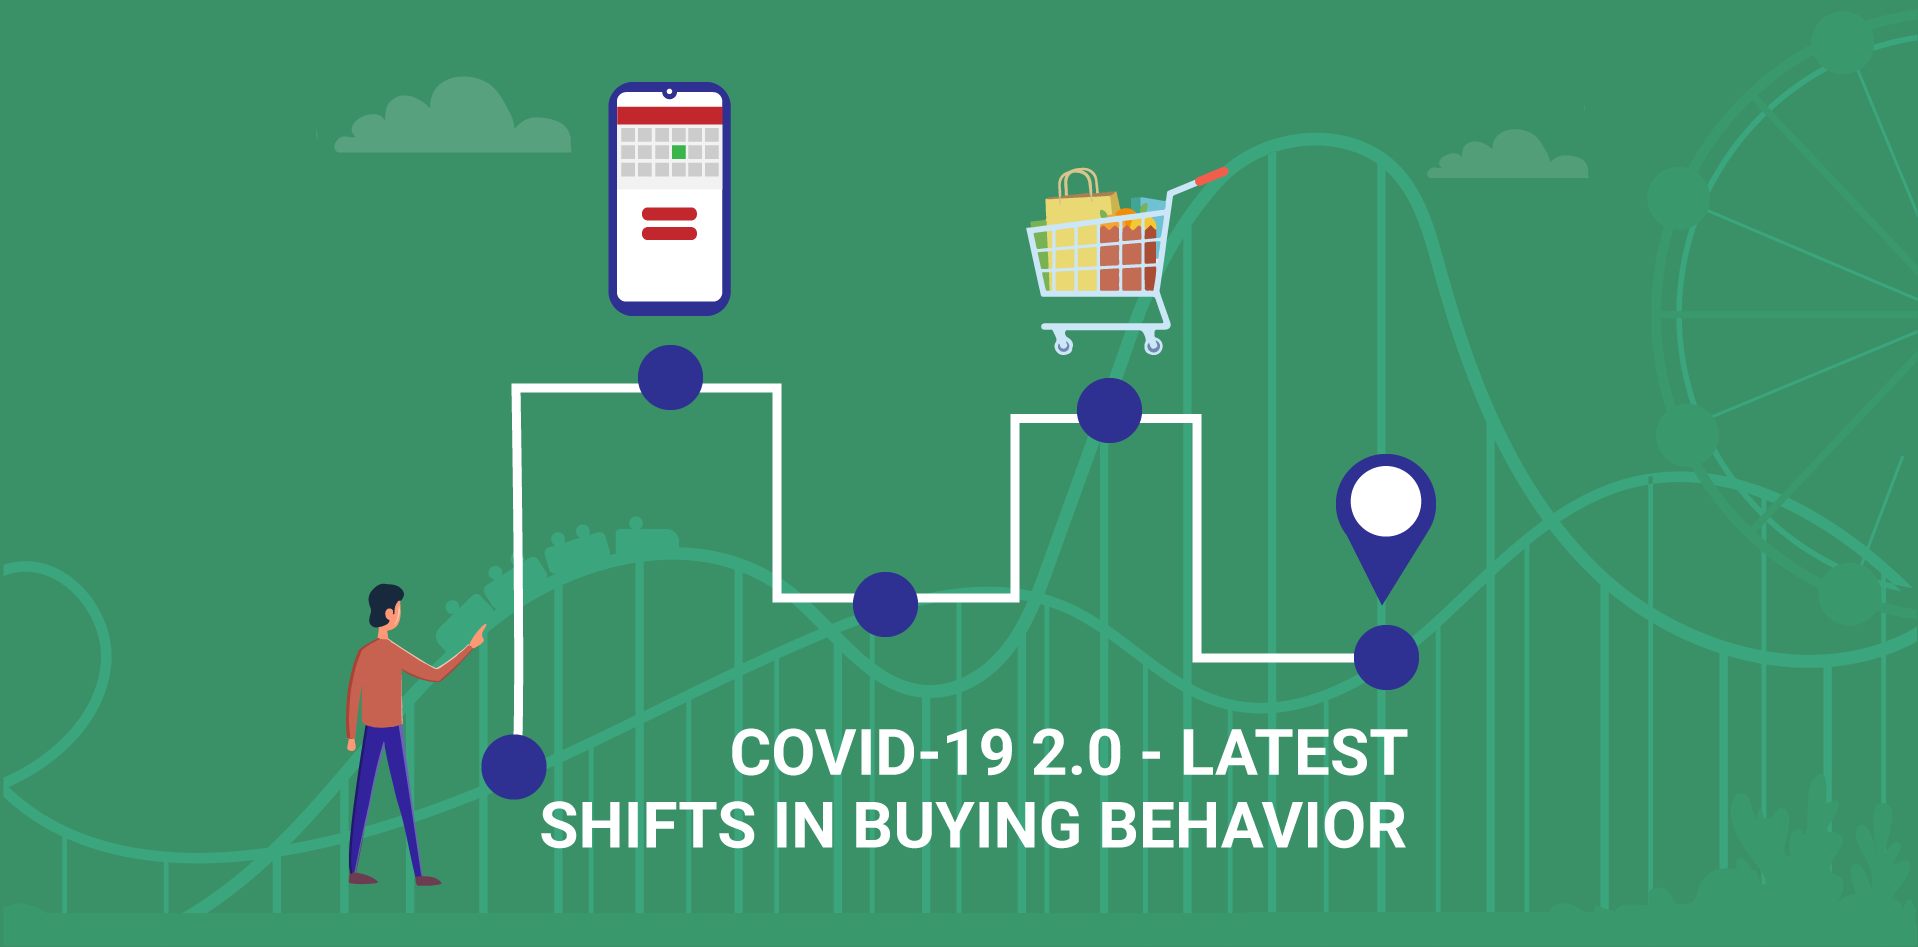 How to adapt your leisure customer journey to the latest shifts in buying behavior due to COVID-19